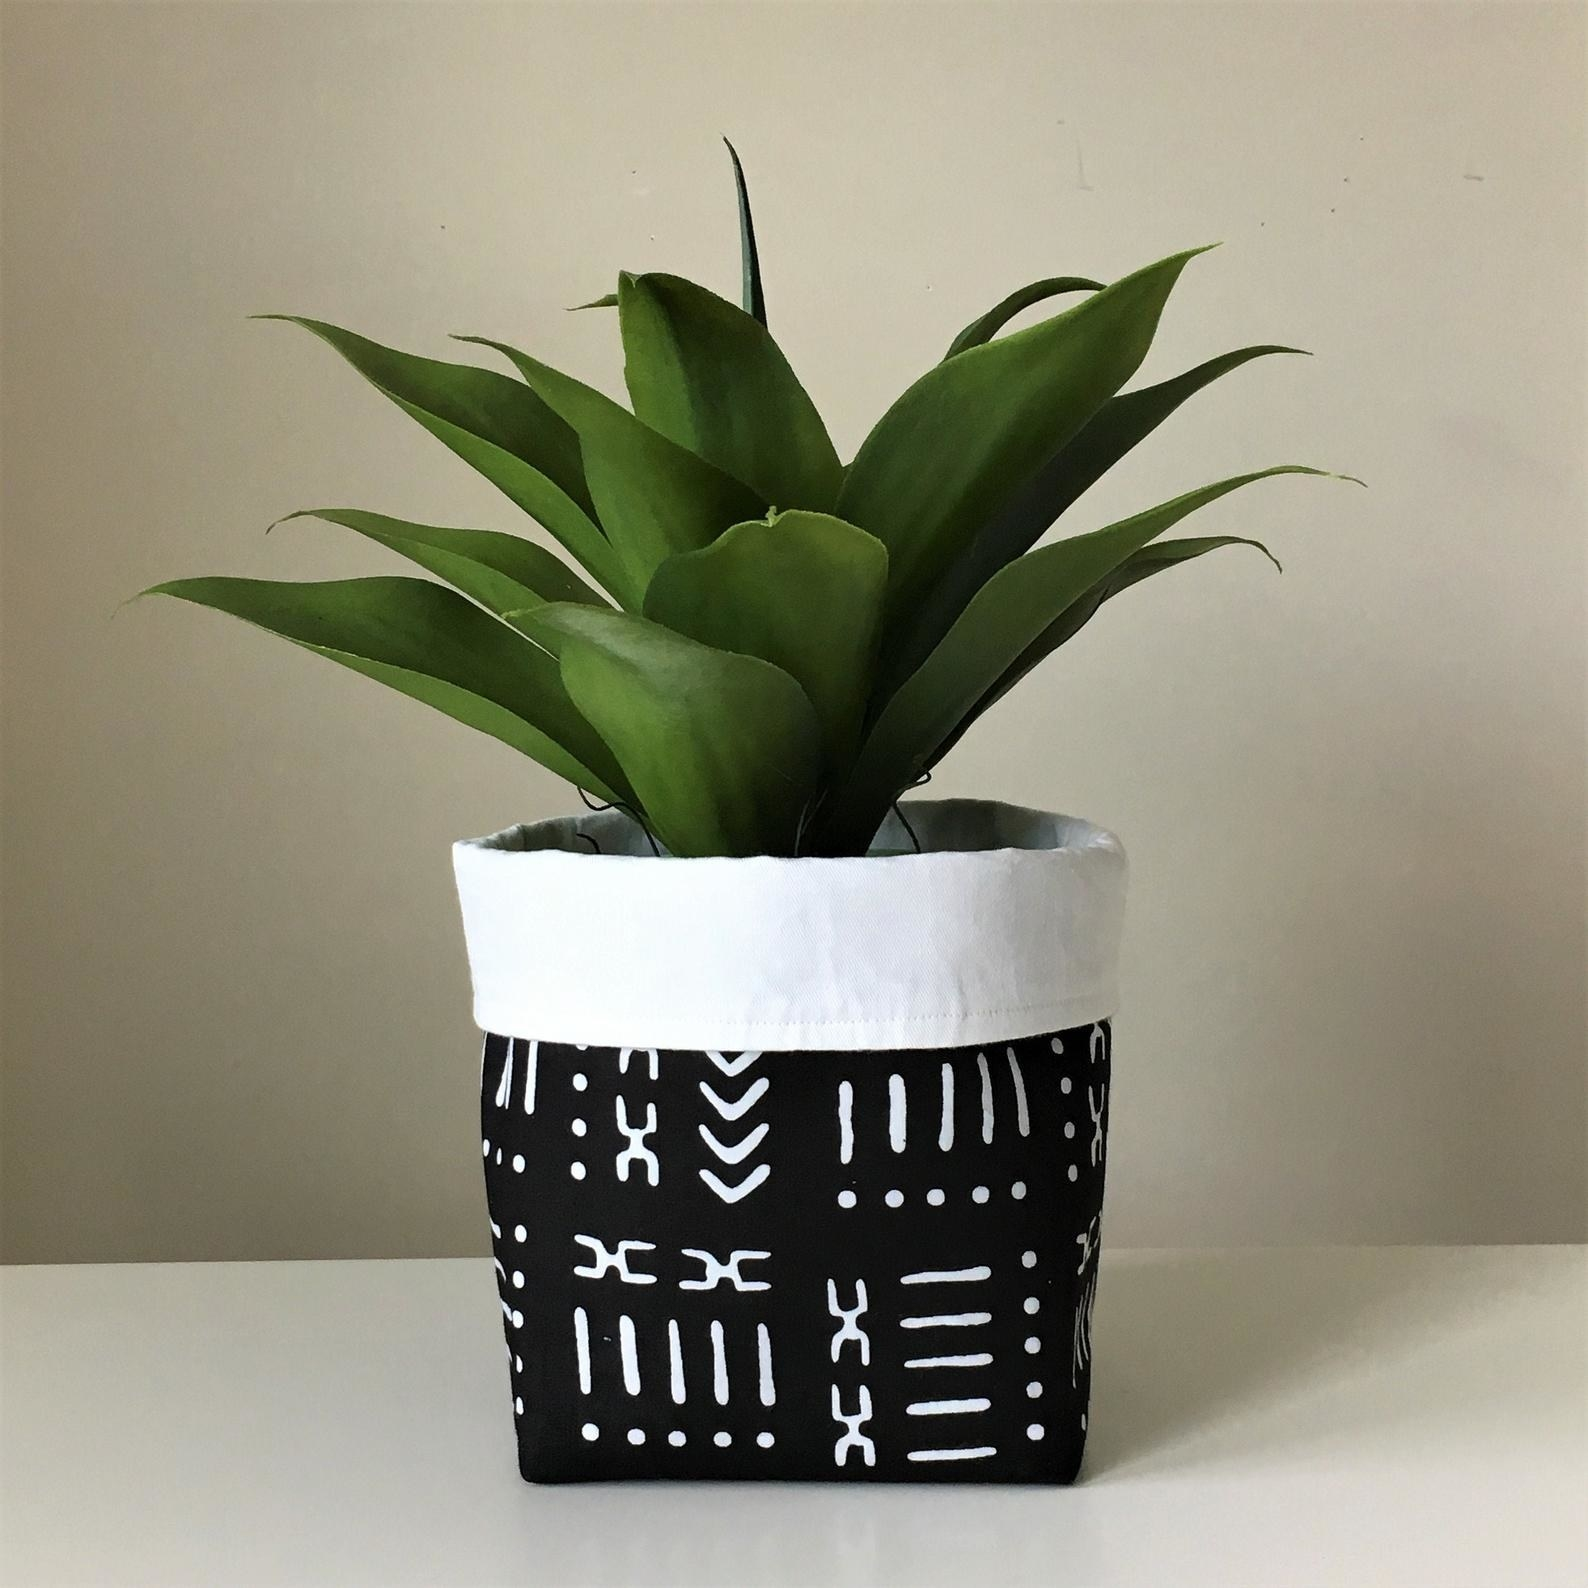 The fabric basket with a plant in it in black with white printed design all over it and the top part folded down to show the other wite side